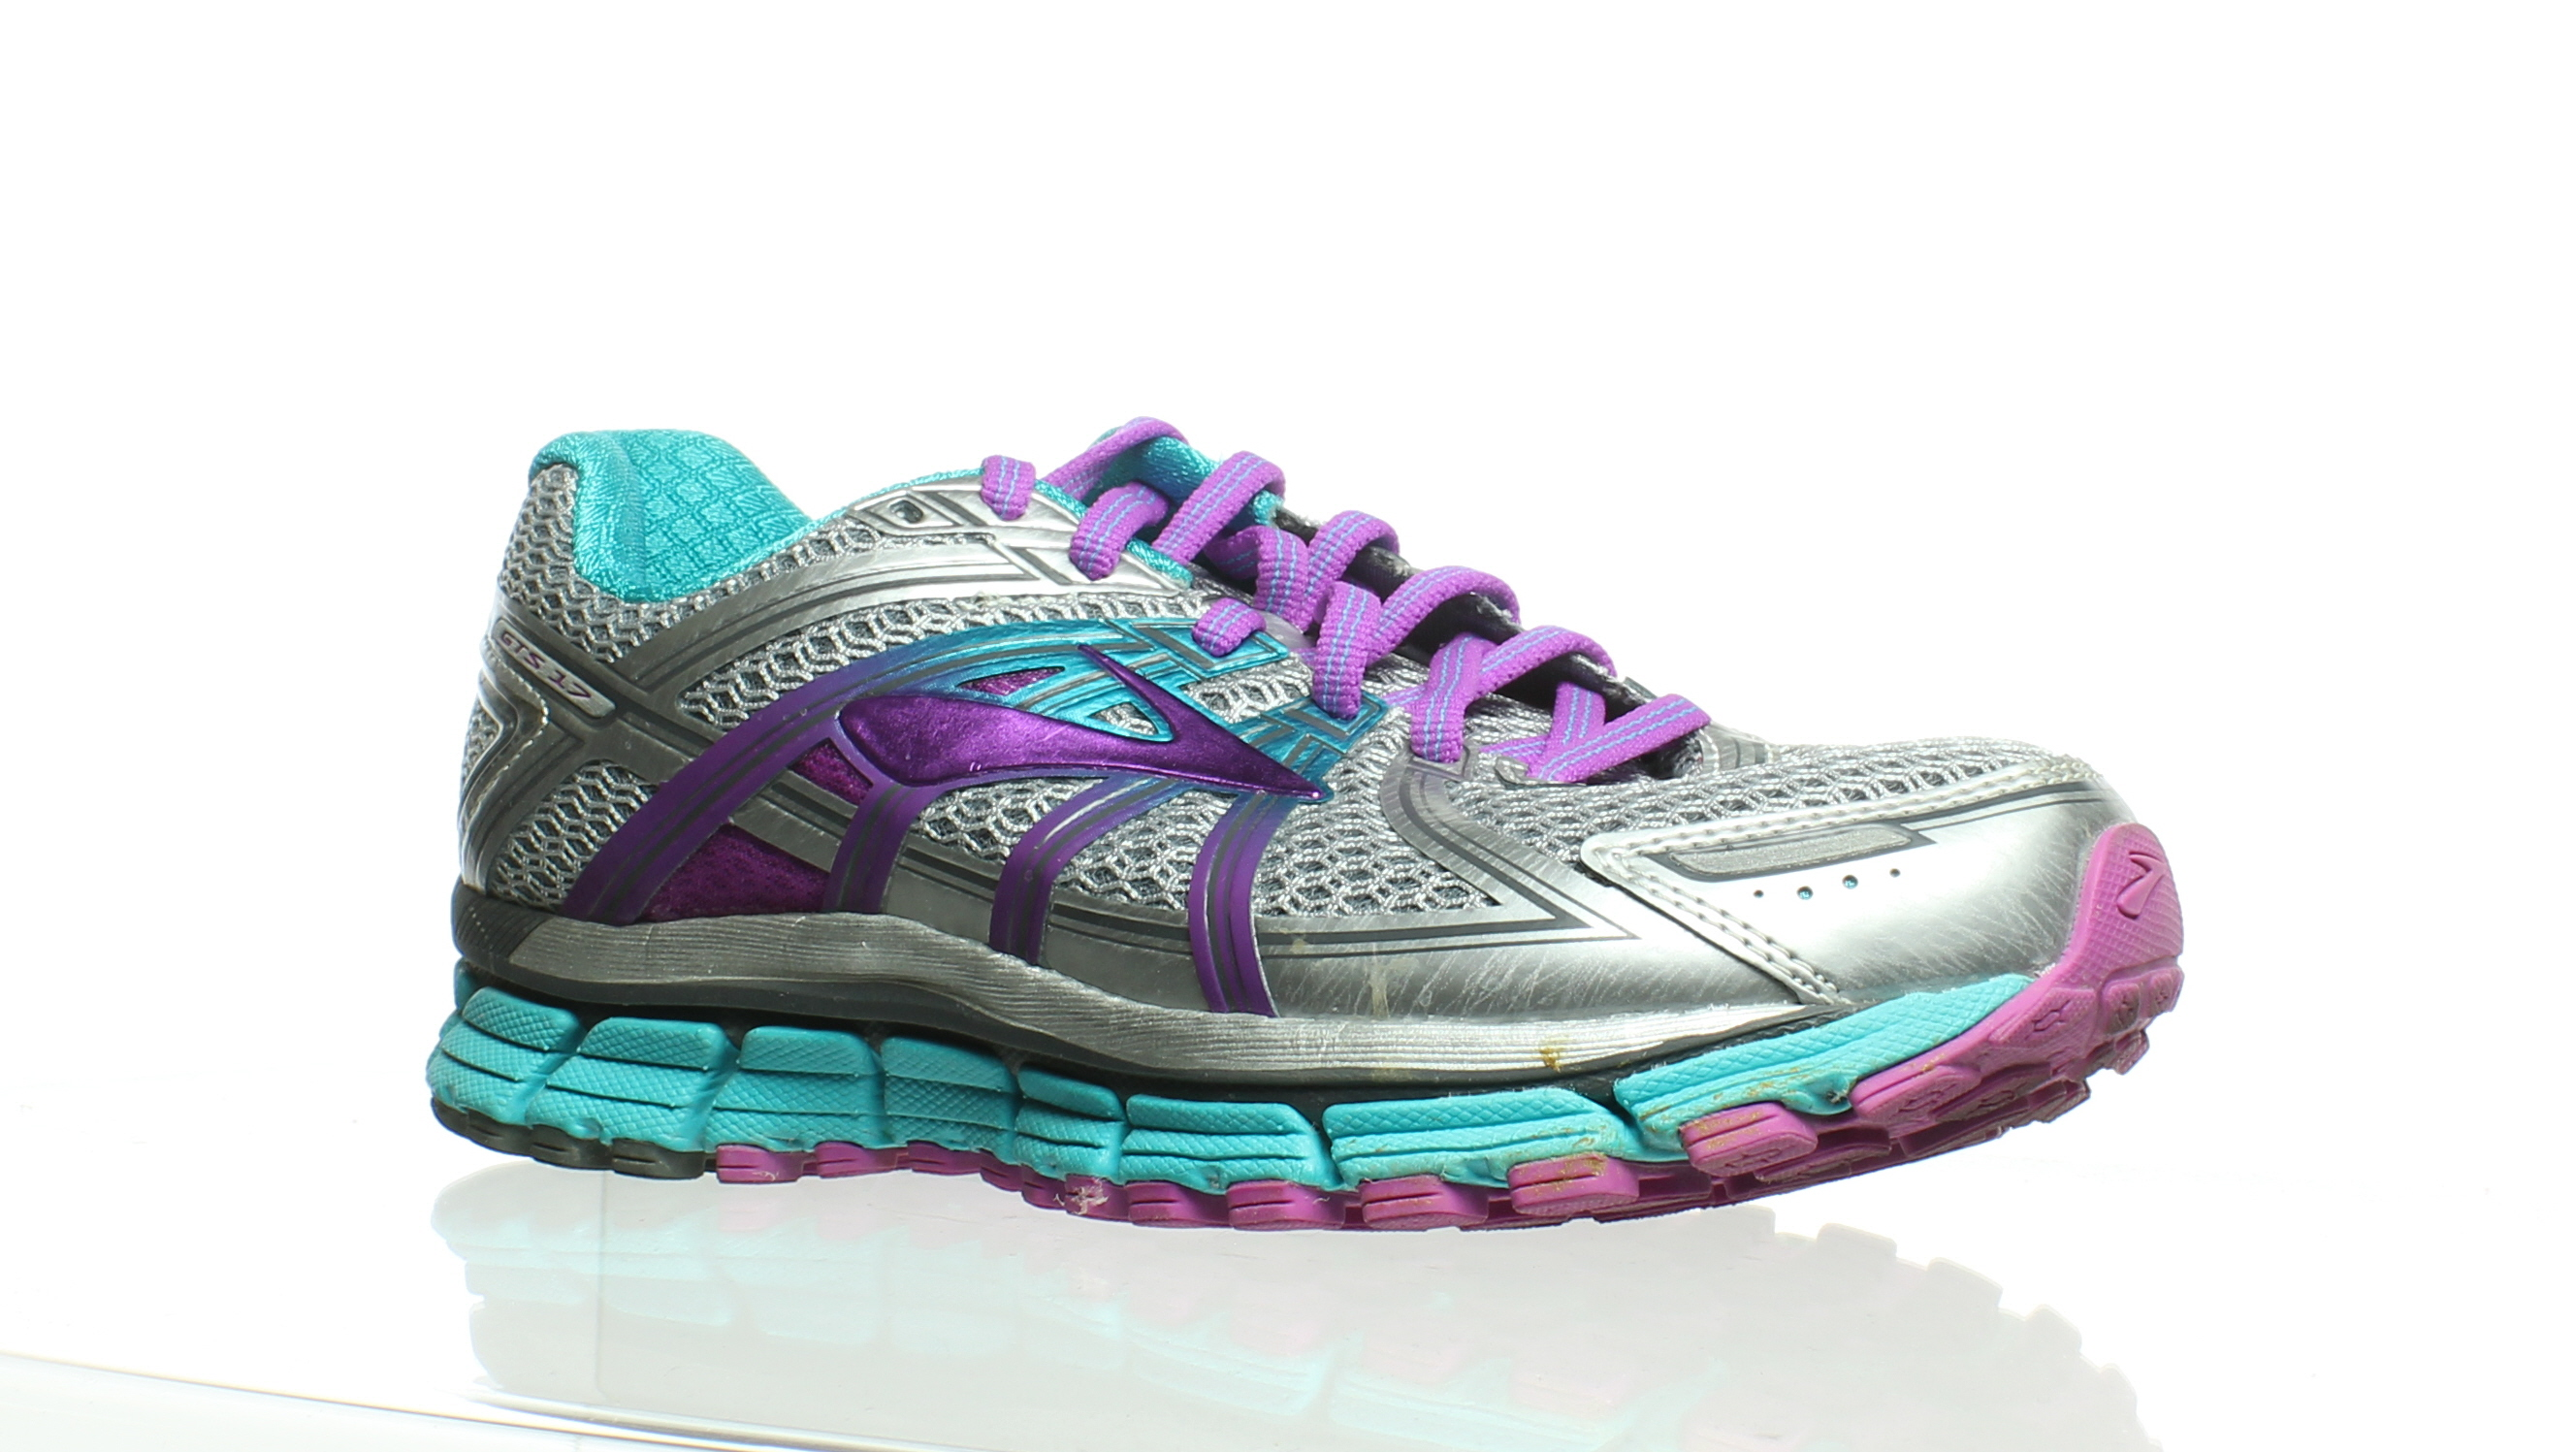 90eecc5415d9c Details about Brooks Womens Adrenaline Gts 17 Silver Running Shoes Size 6  (216705)